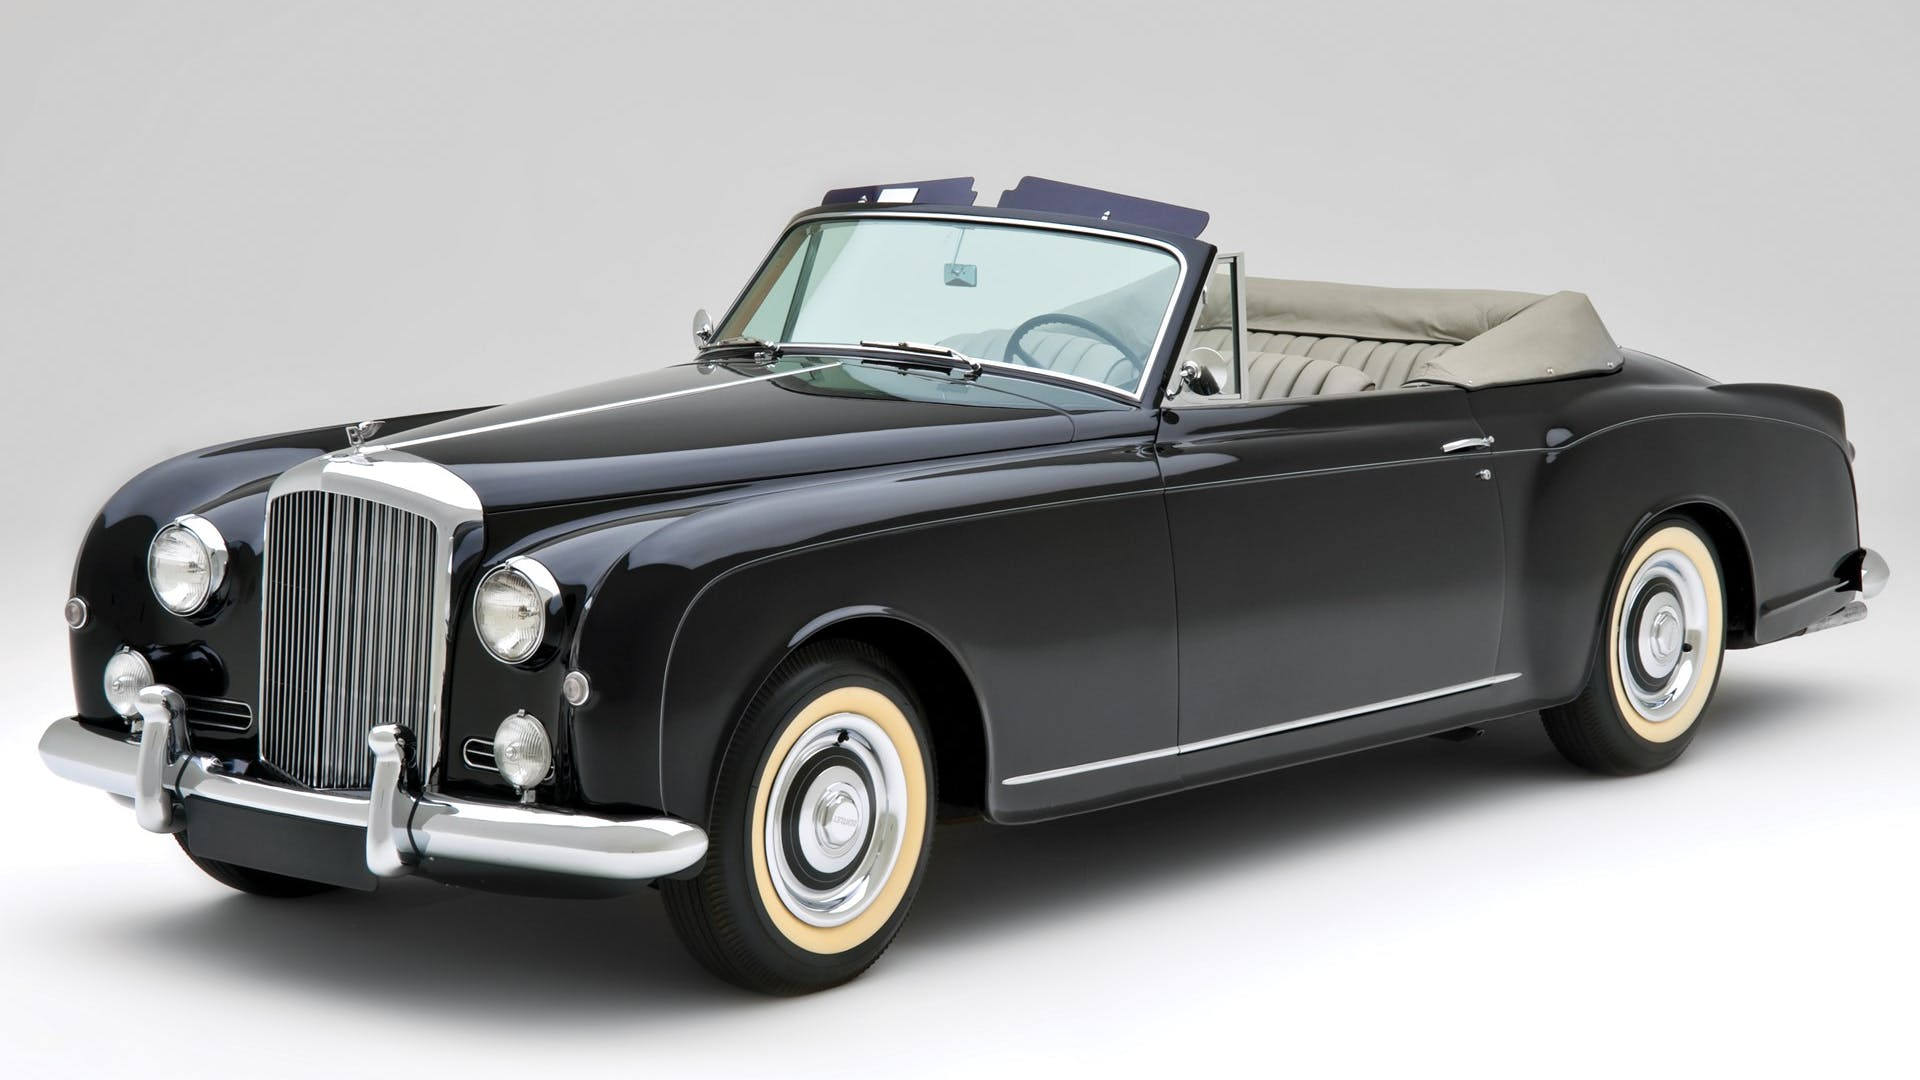 1956 Bentley S1 Continental Drophead Coupe by Park Ward